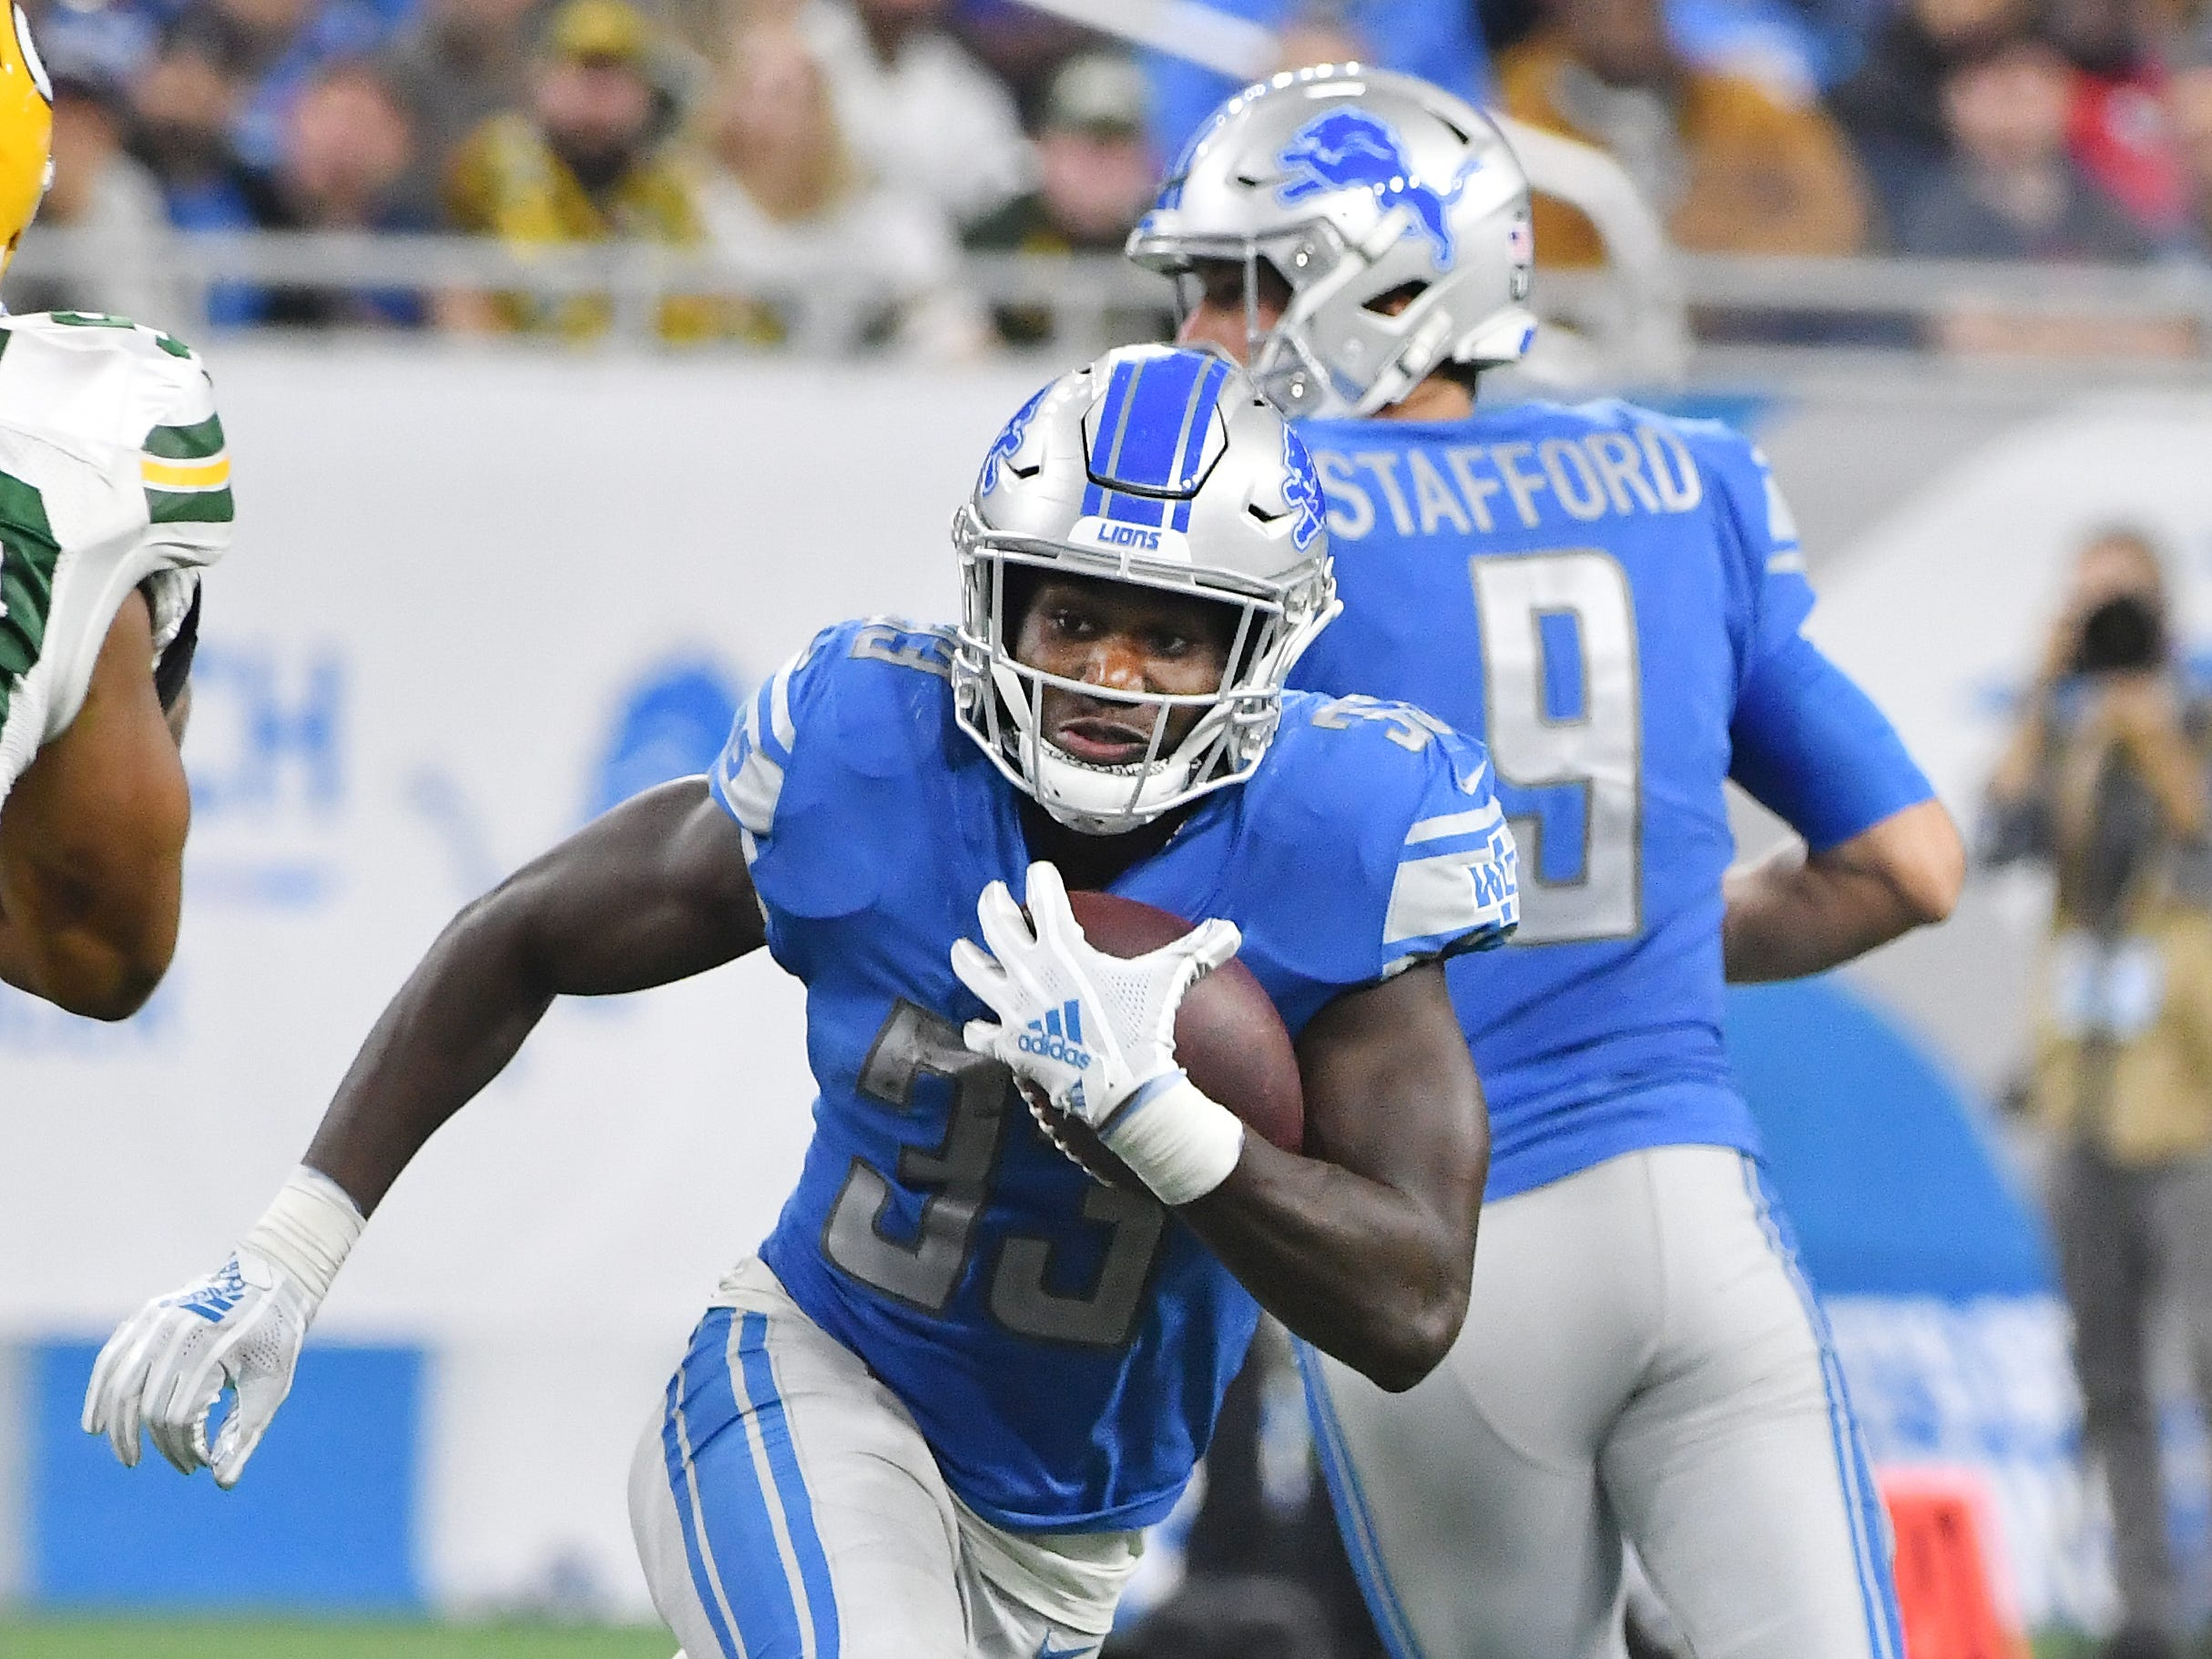 Lions running back Keryon Johnson takes the ball up field after the handoff from quarterback Matthew Stafford in the fourth quarter.